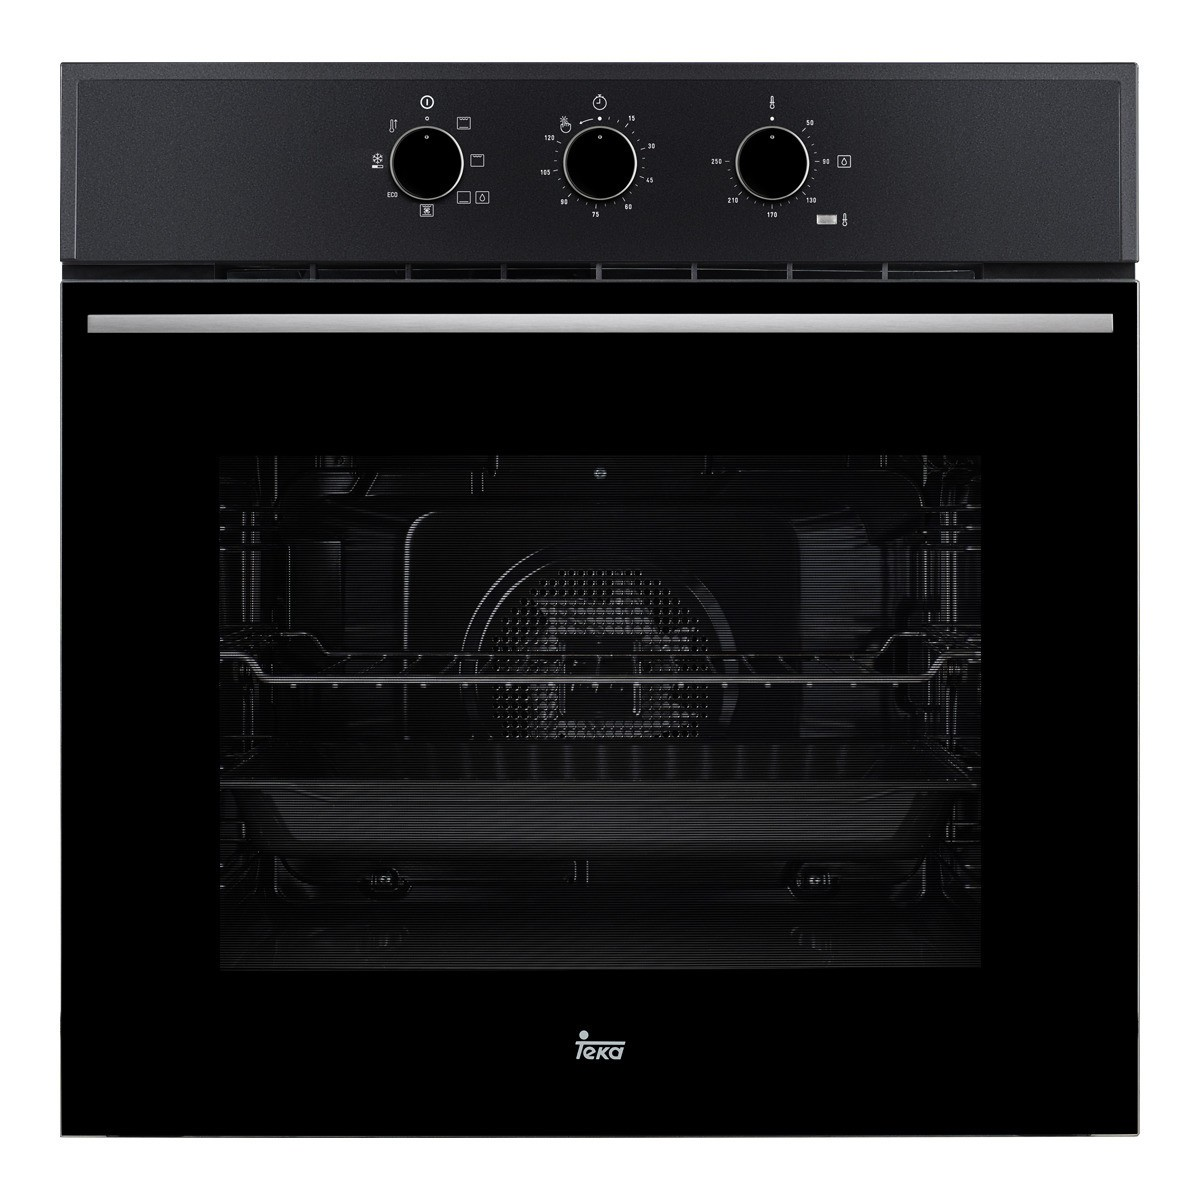 Horno Teka Hsb610 Indep Multifuncion Negro